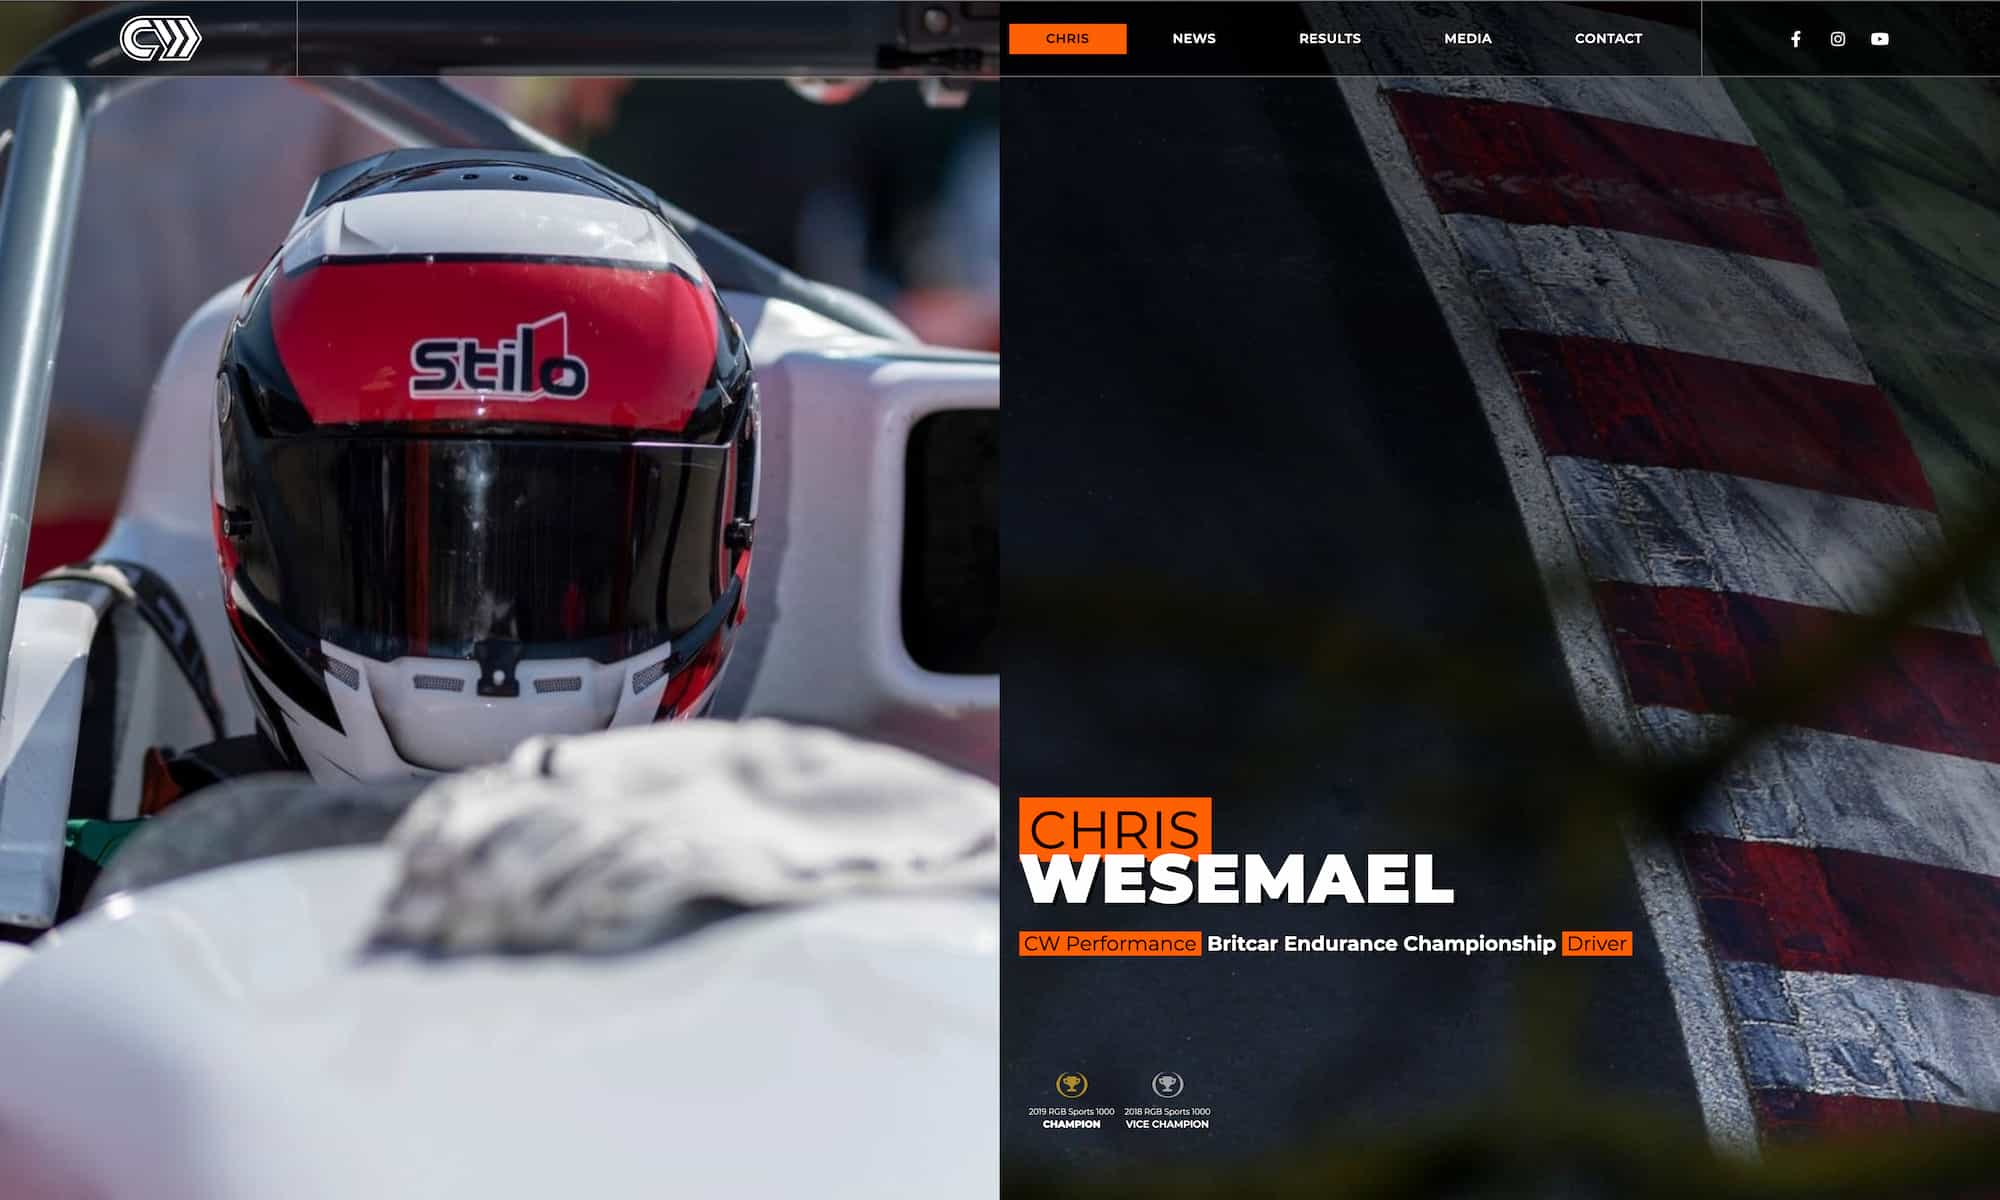 Chris Wesemael and CW Performance Racing Team